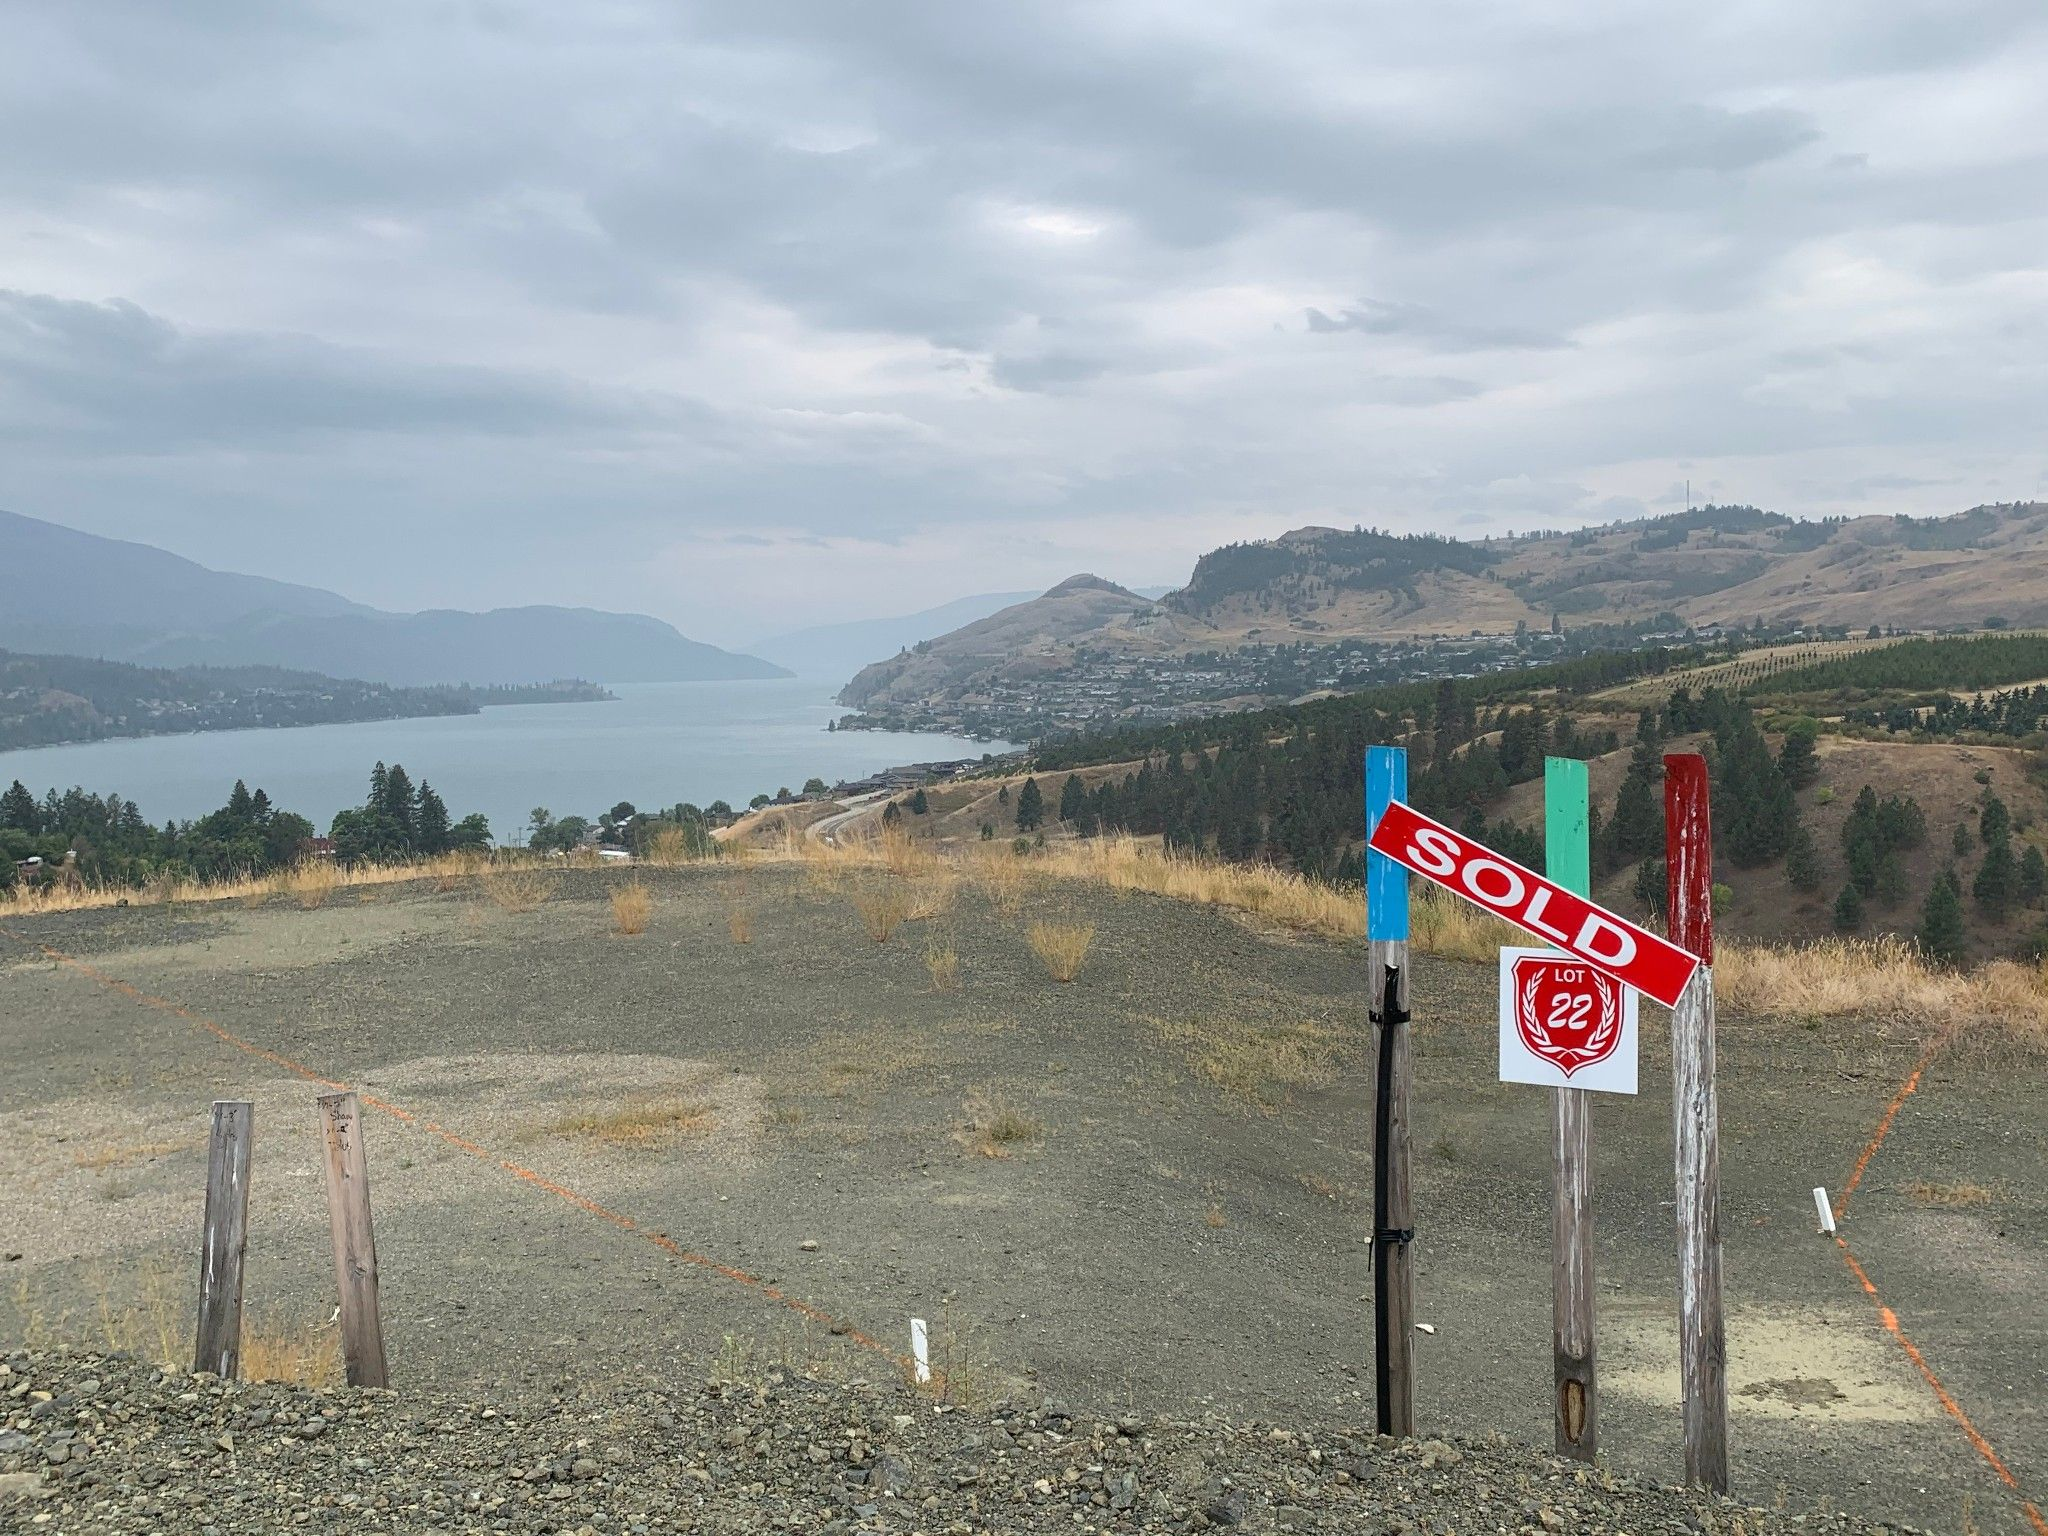 Main Photo: Lot 22 904 Mt Griffin Road in Vernon: Middlton Mtn Vacant Land for sale (North Okanagan)  : MLS®# 10215264